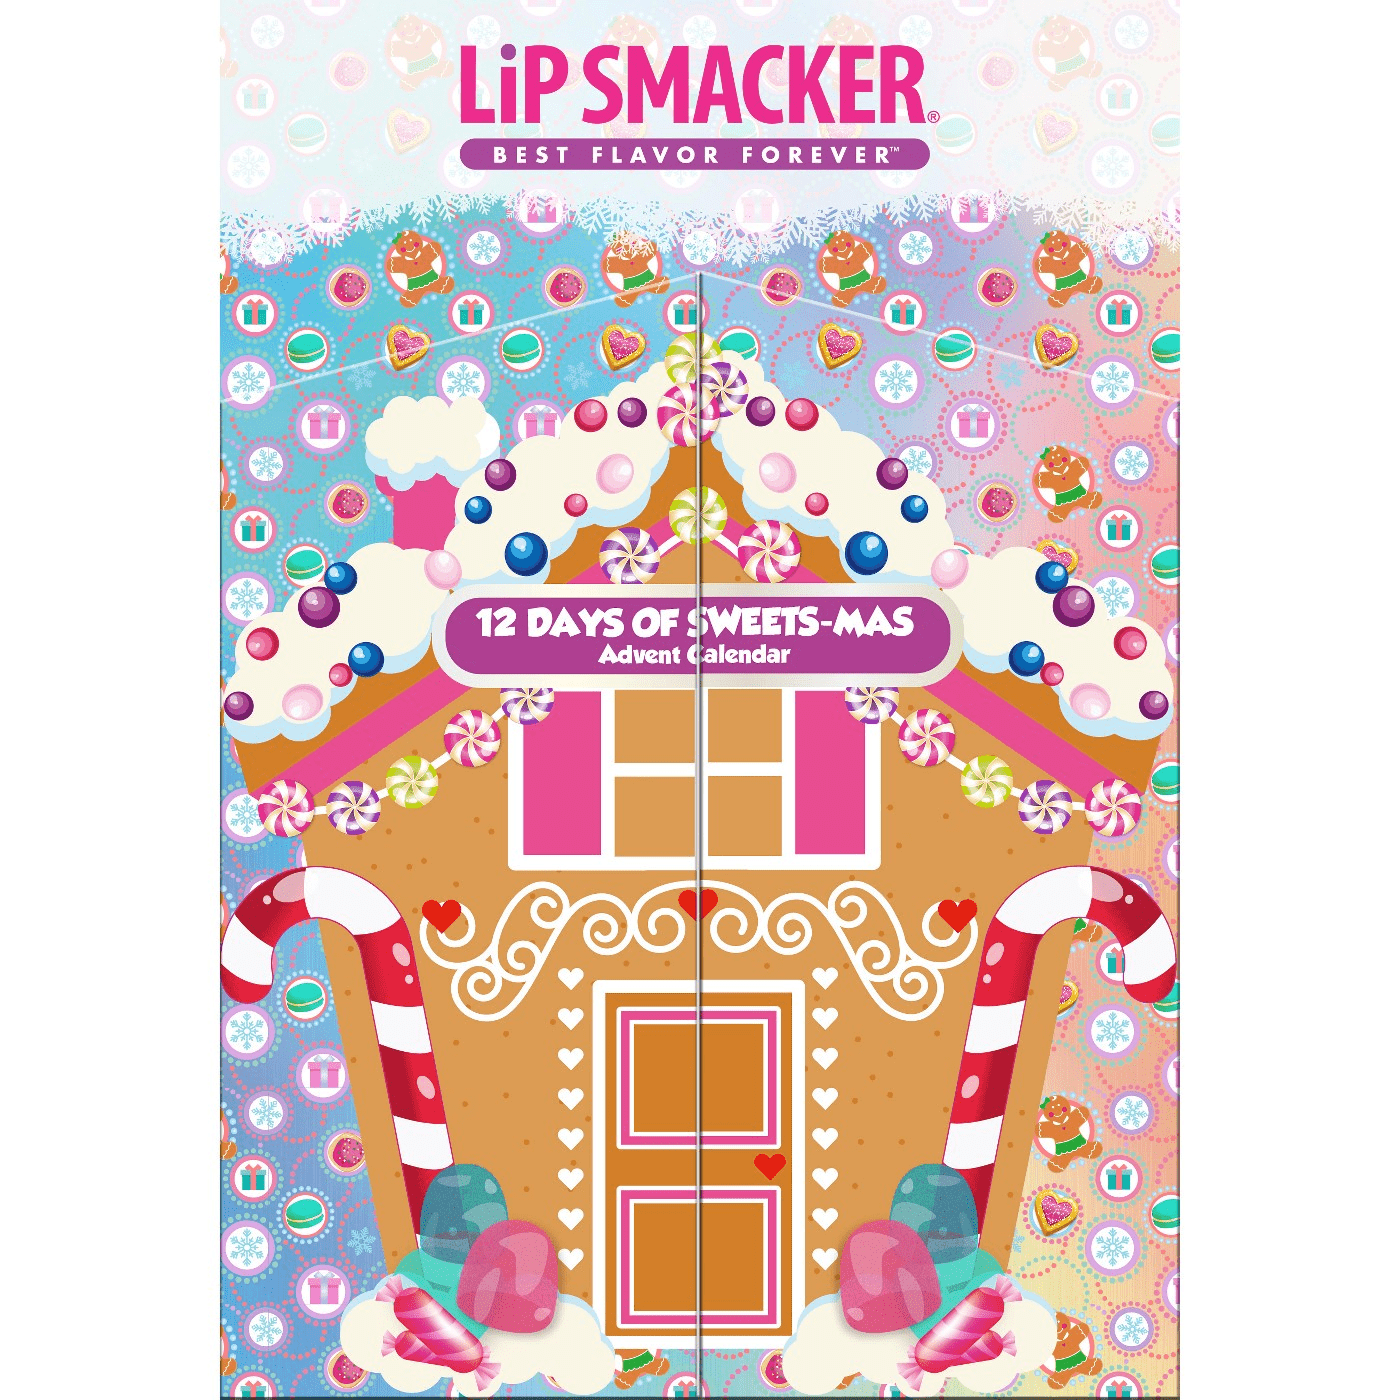 2018 Lip Smacker Advent Calendar Available Now!